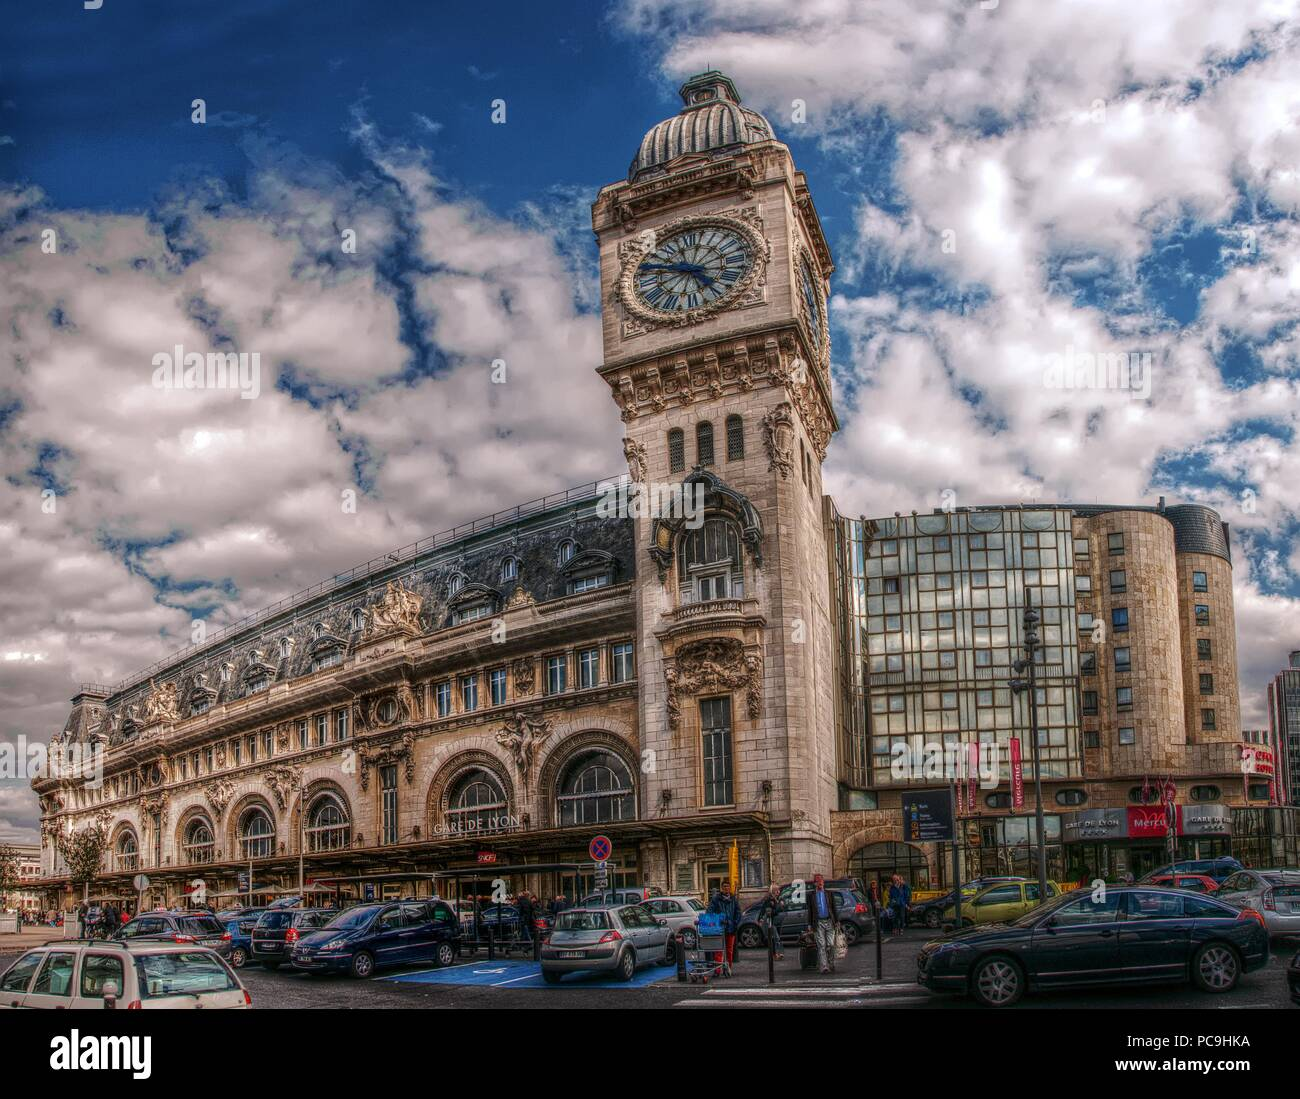 Gare De Paris Gare De Lyon Railway Station In Paris Stock Photo 214111726 Alamy